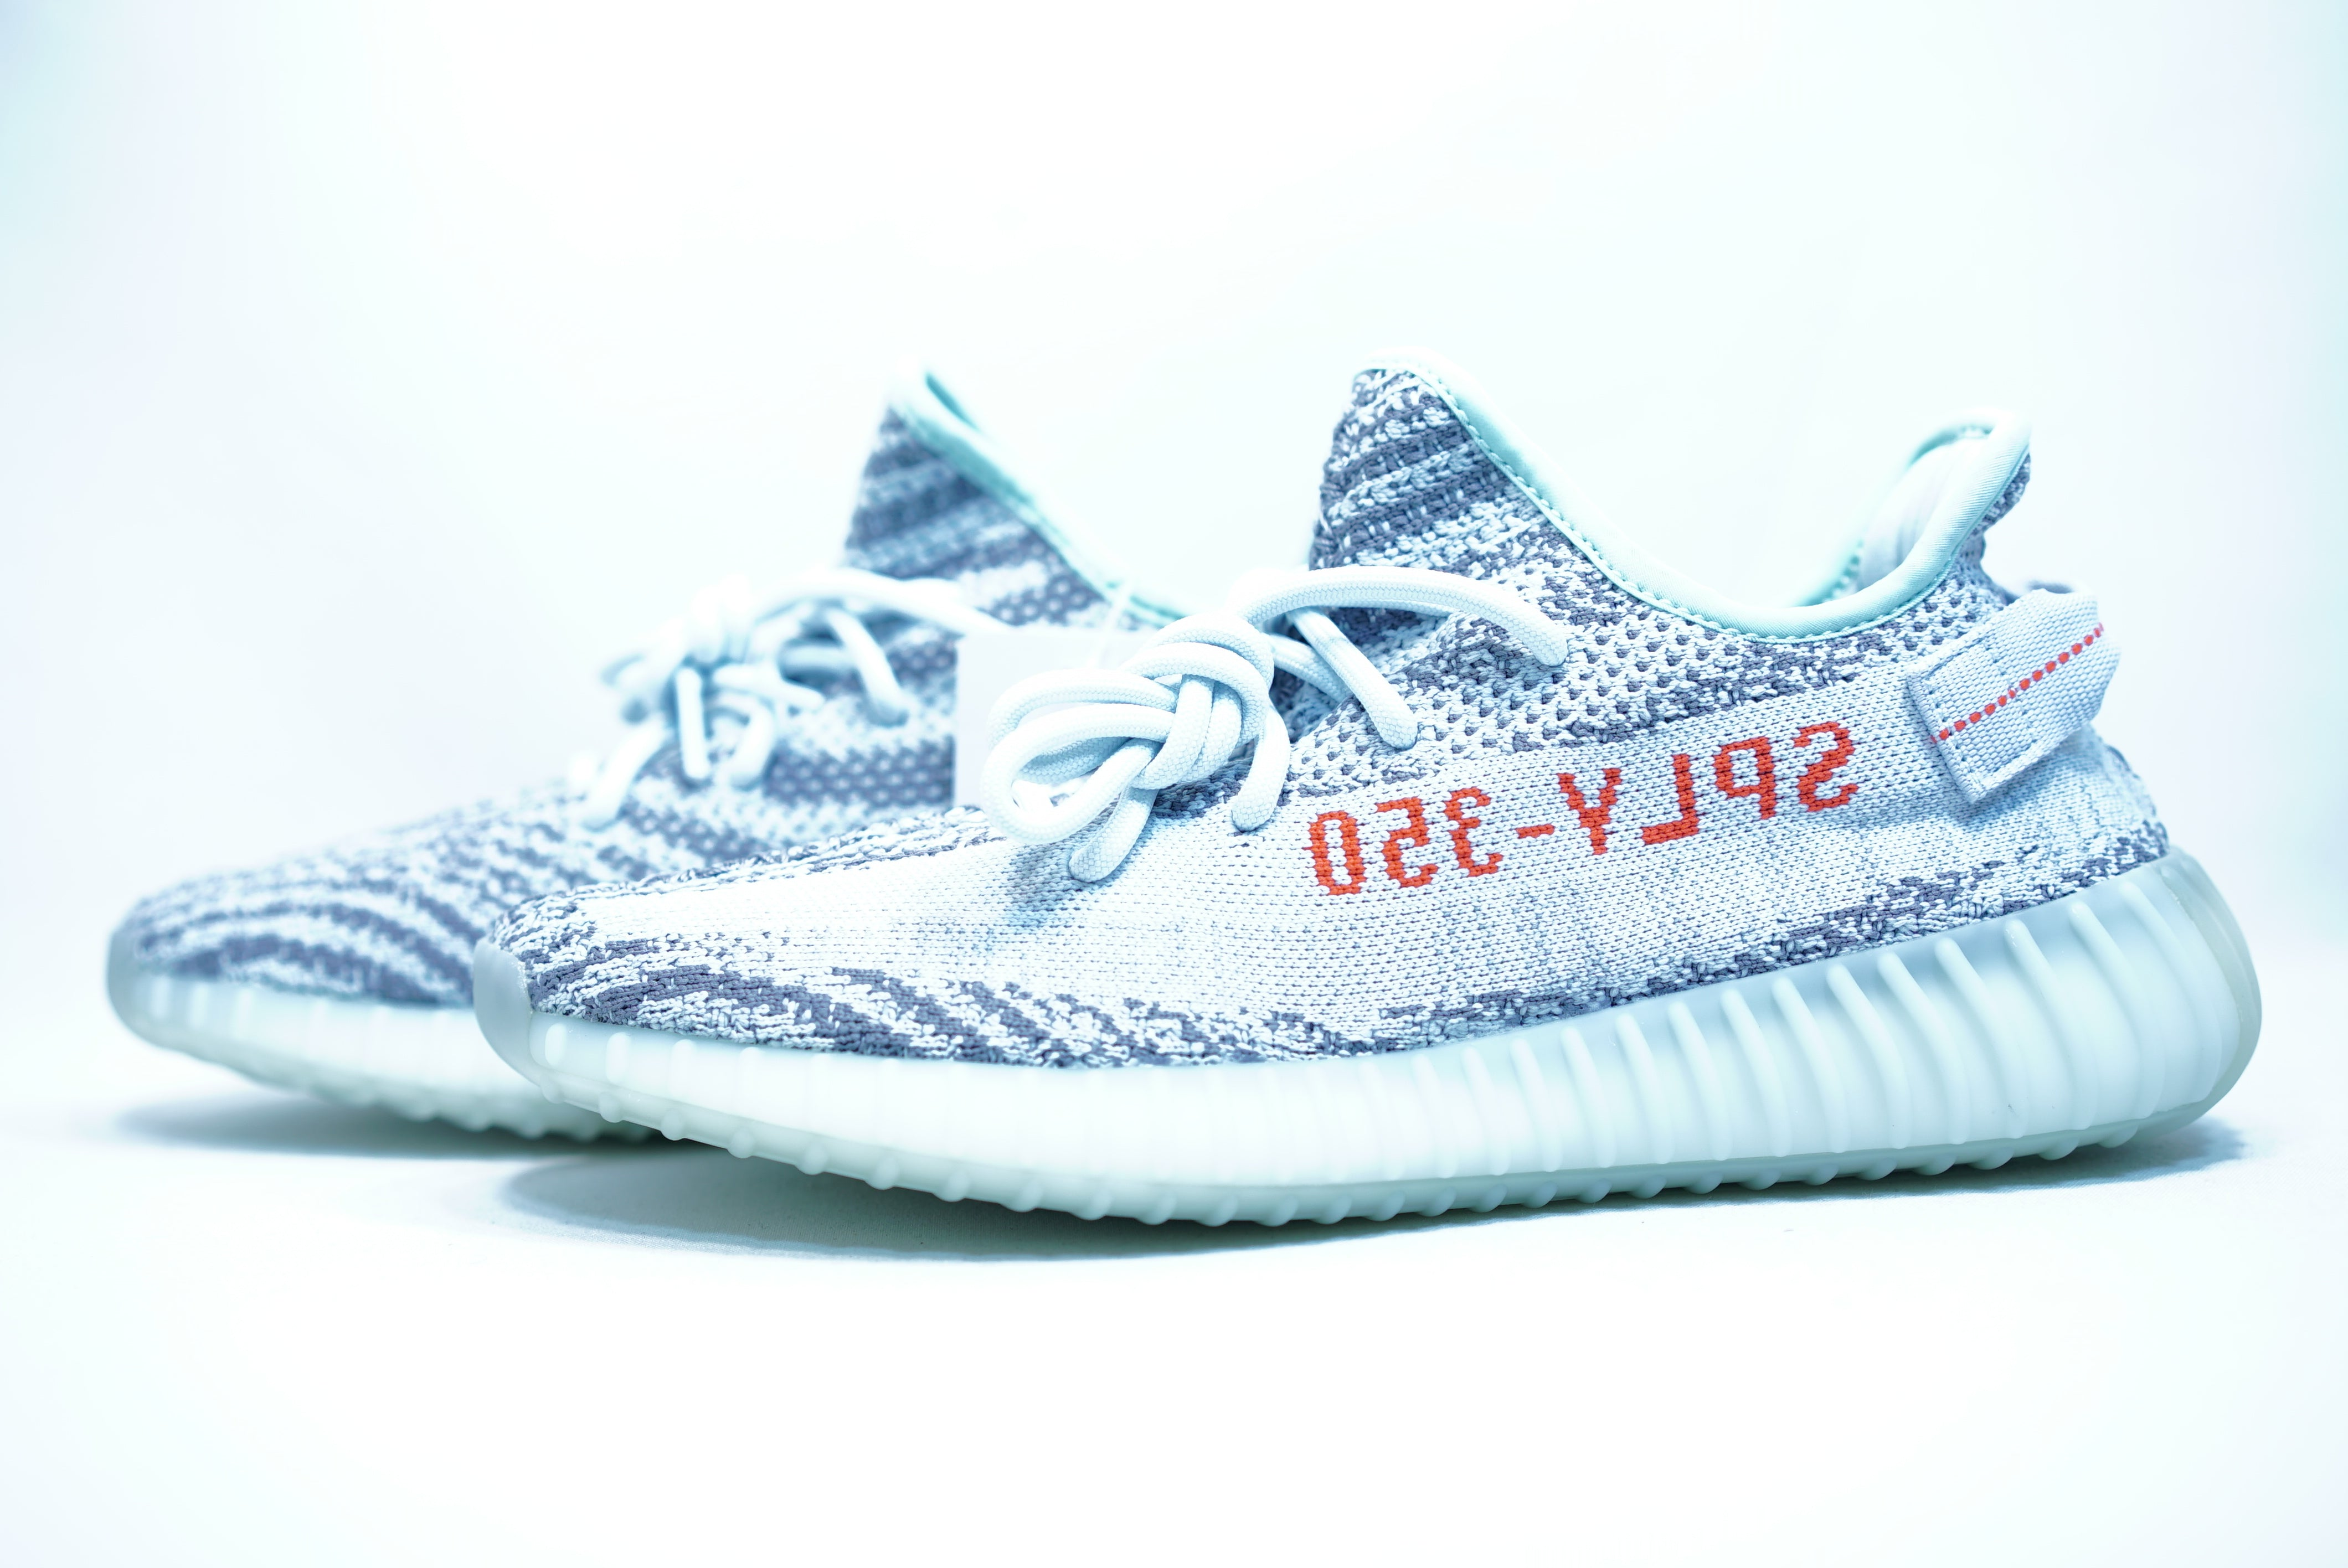 741b8e24a64 Adidas Yeezy Boost 350 V2  Blue Tint  - The Sole Library